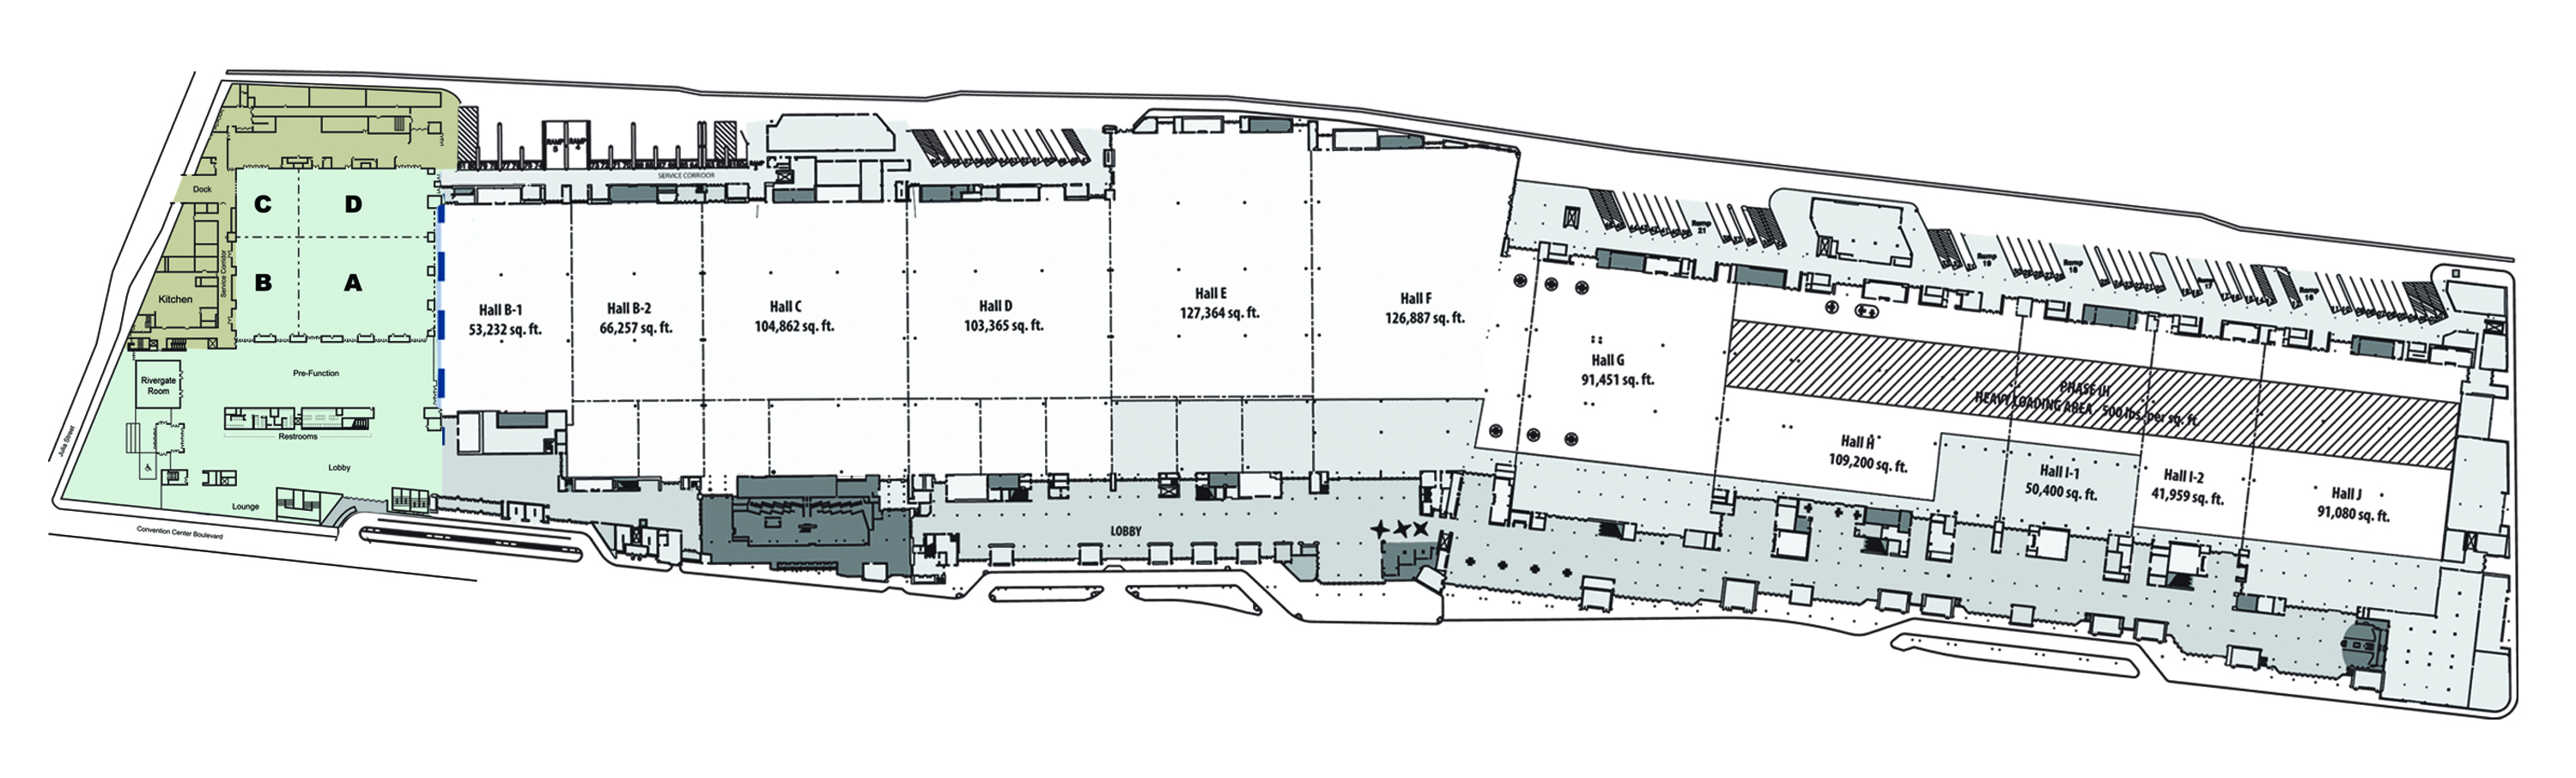 New orleans convention center floor plan gurus floor for Blueprints website